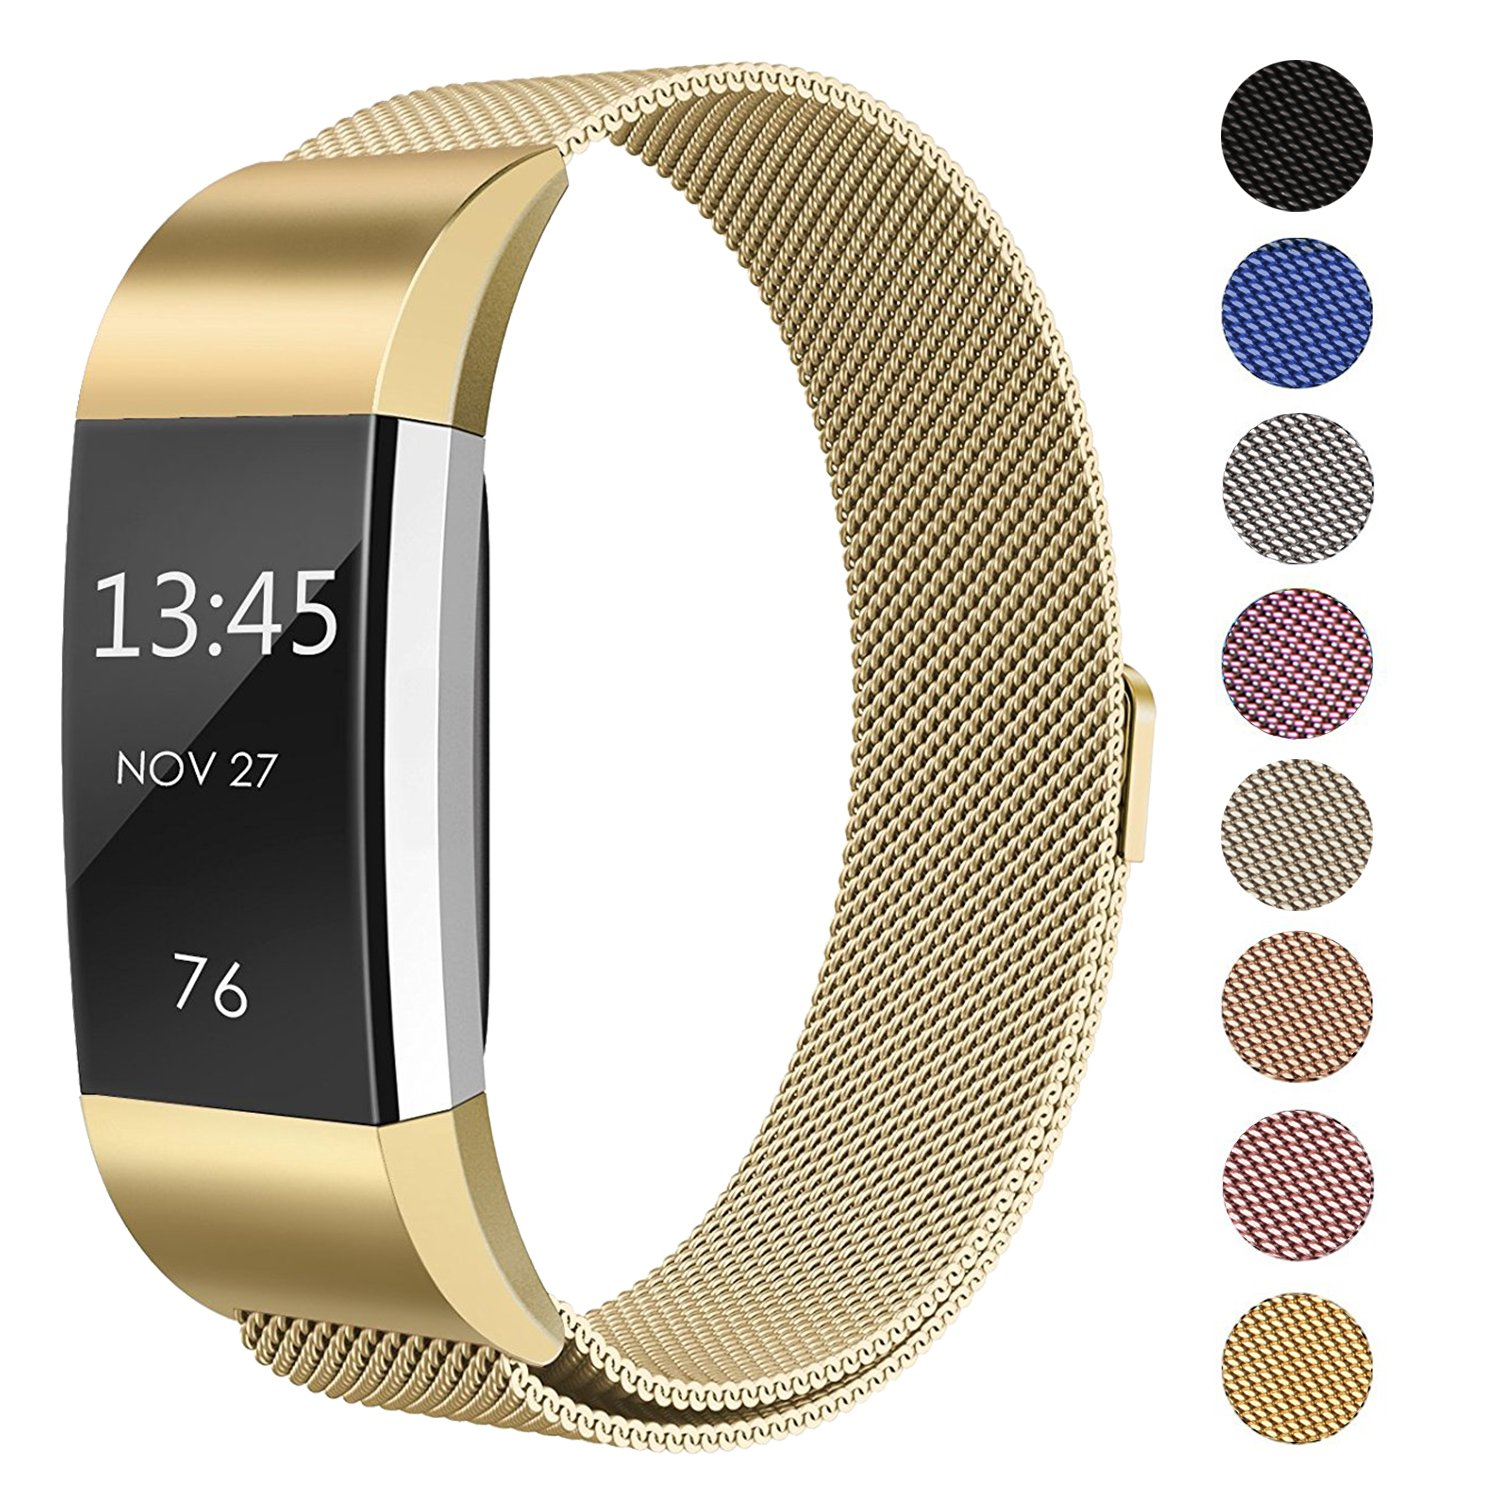 SWEES Metal Bands Compatible Fitbit Charge 2, Milanese Stainless Steel Metal Magnetic Replacement Wristband Small & Large (5.5'' - 9.9'') Women Men, Silver, Champagne, Rose Gold, Black, Colorful